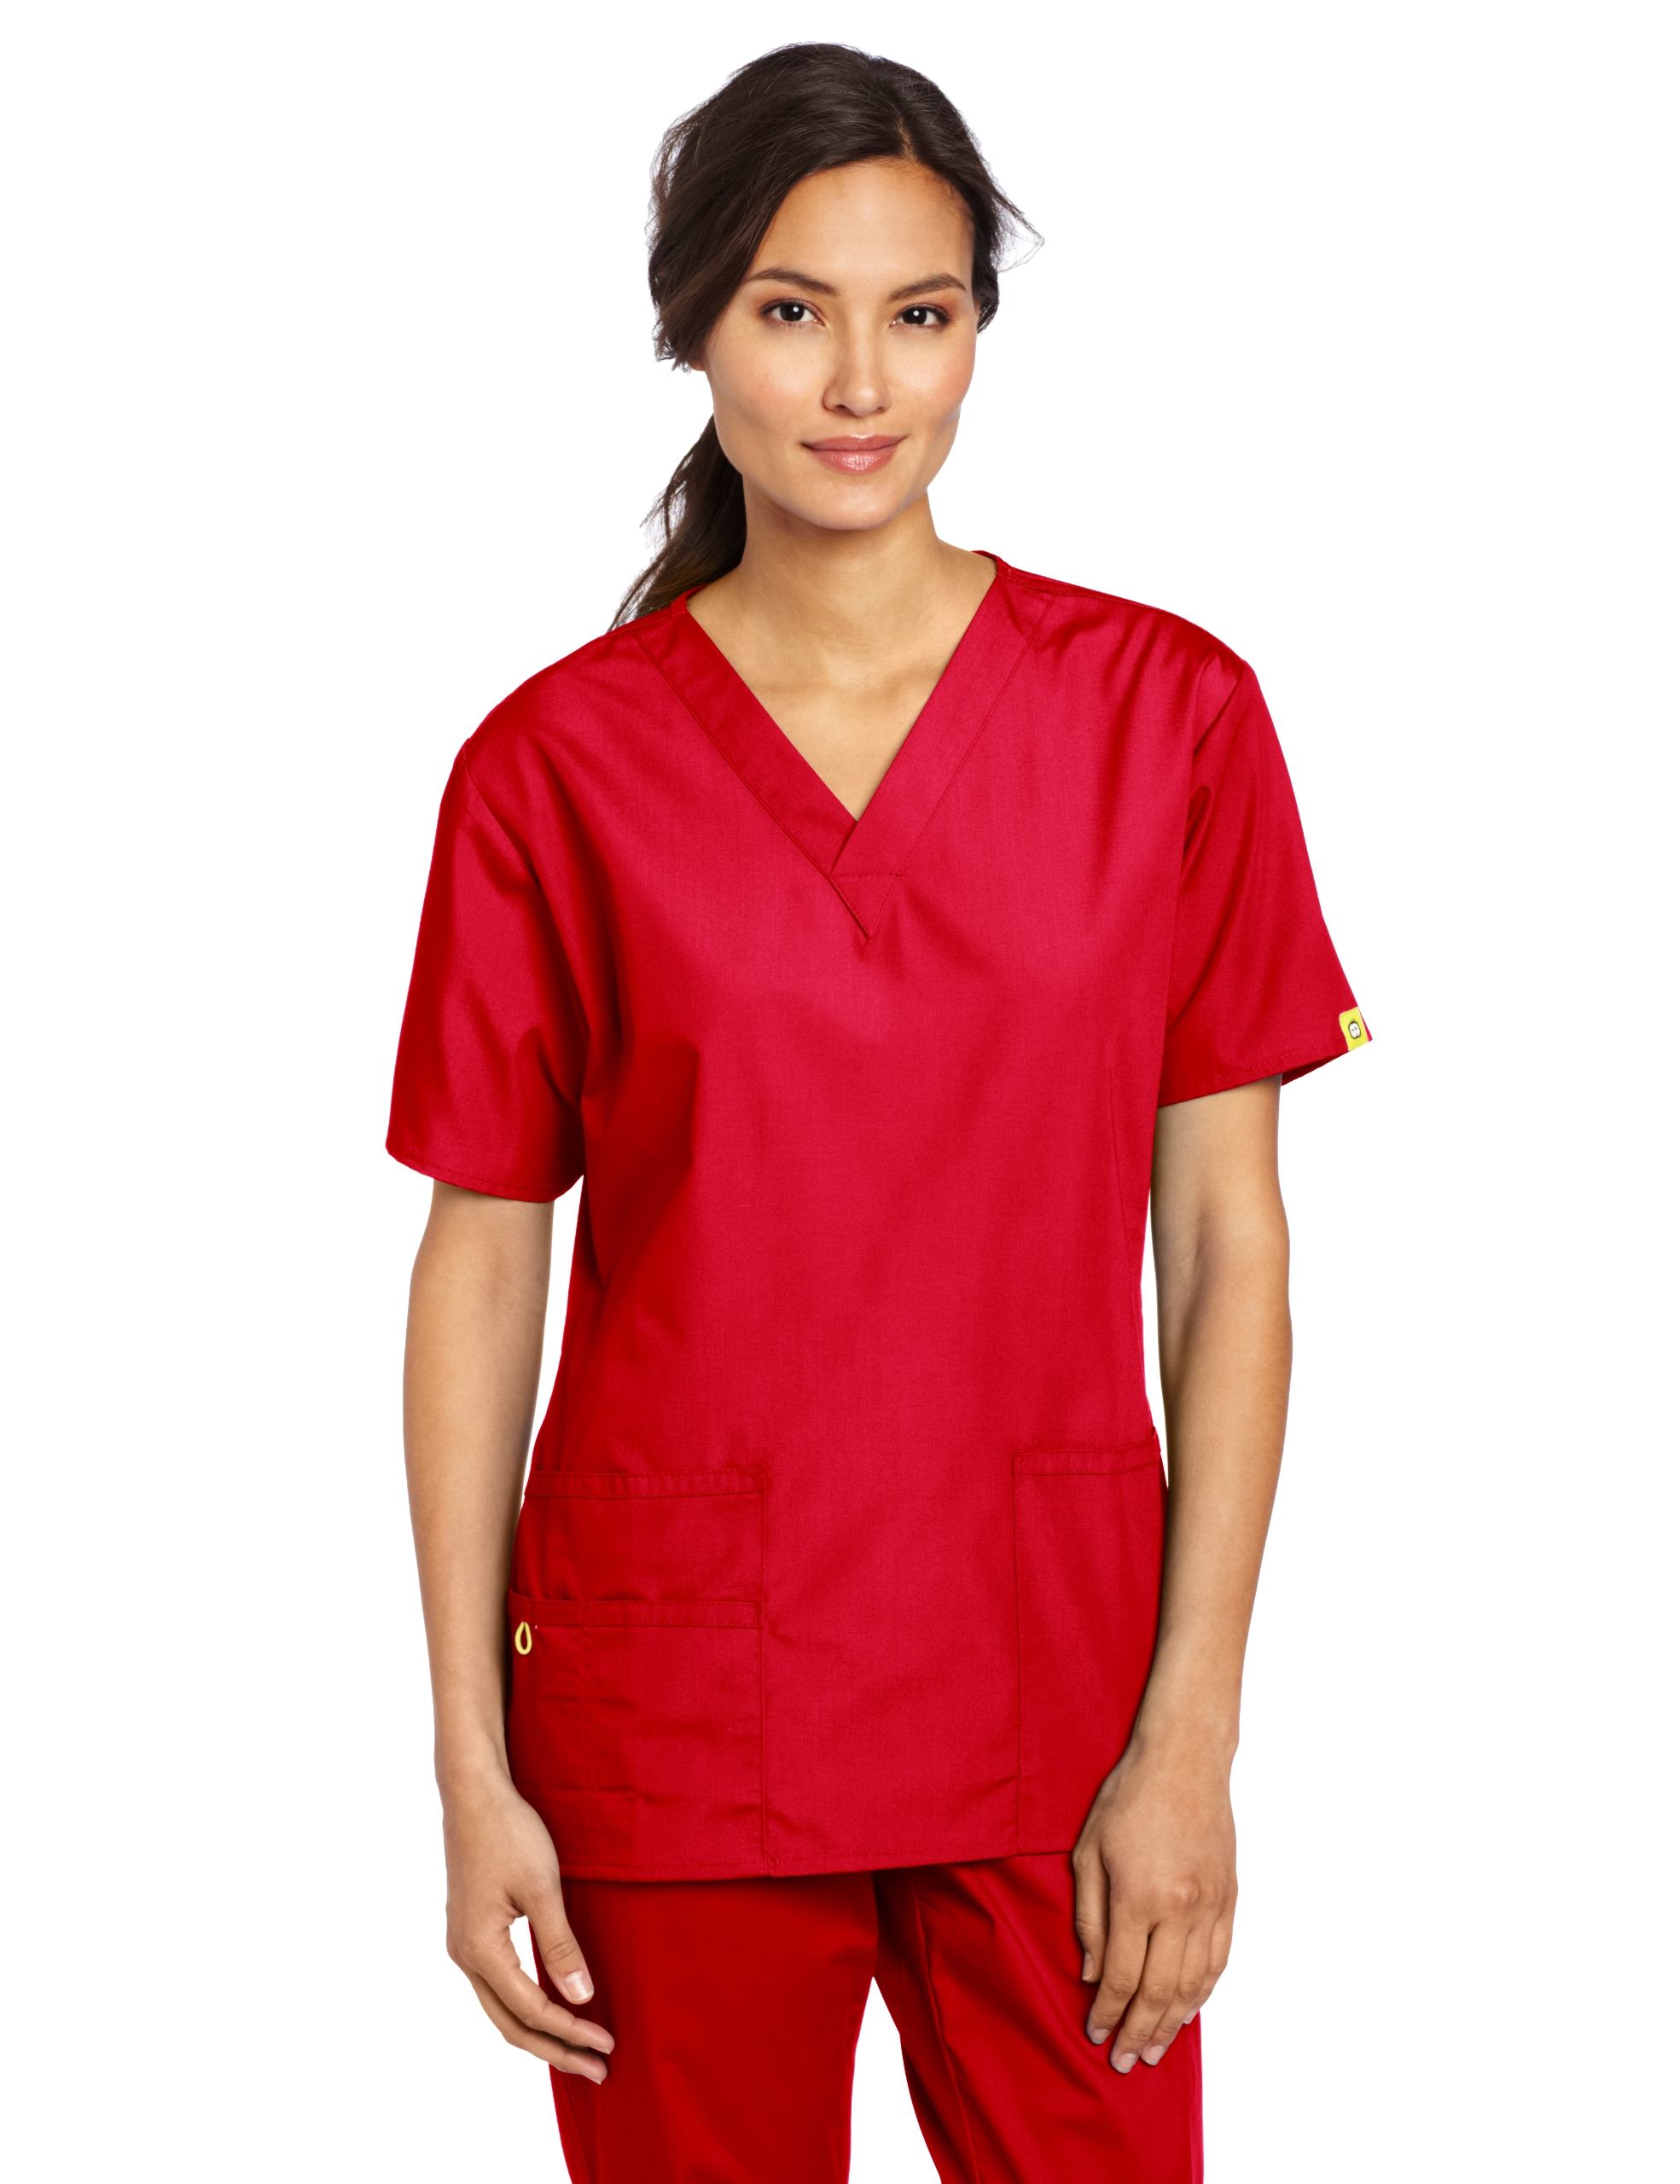 WonderWink Women's Scrubs Bravo 5 Pocket V-Neck Top, Red, Medium